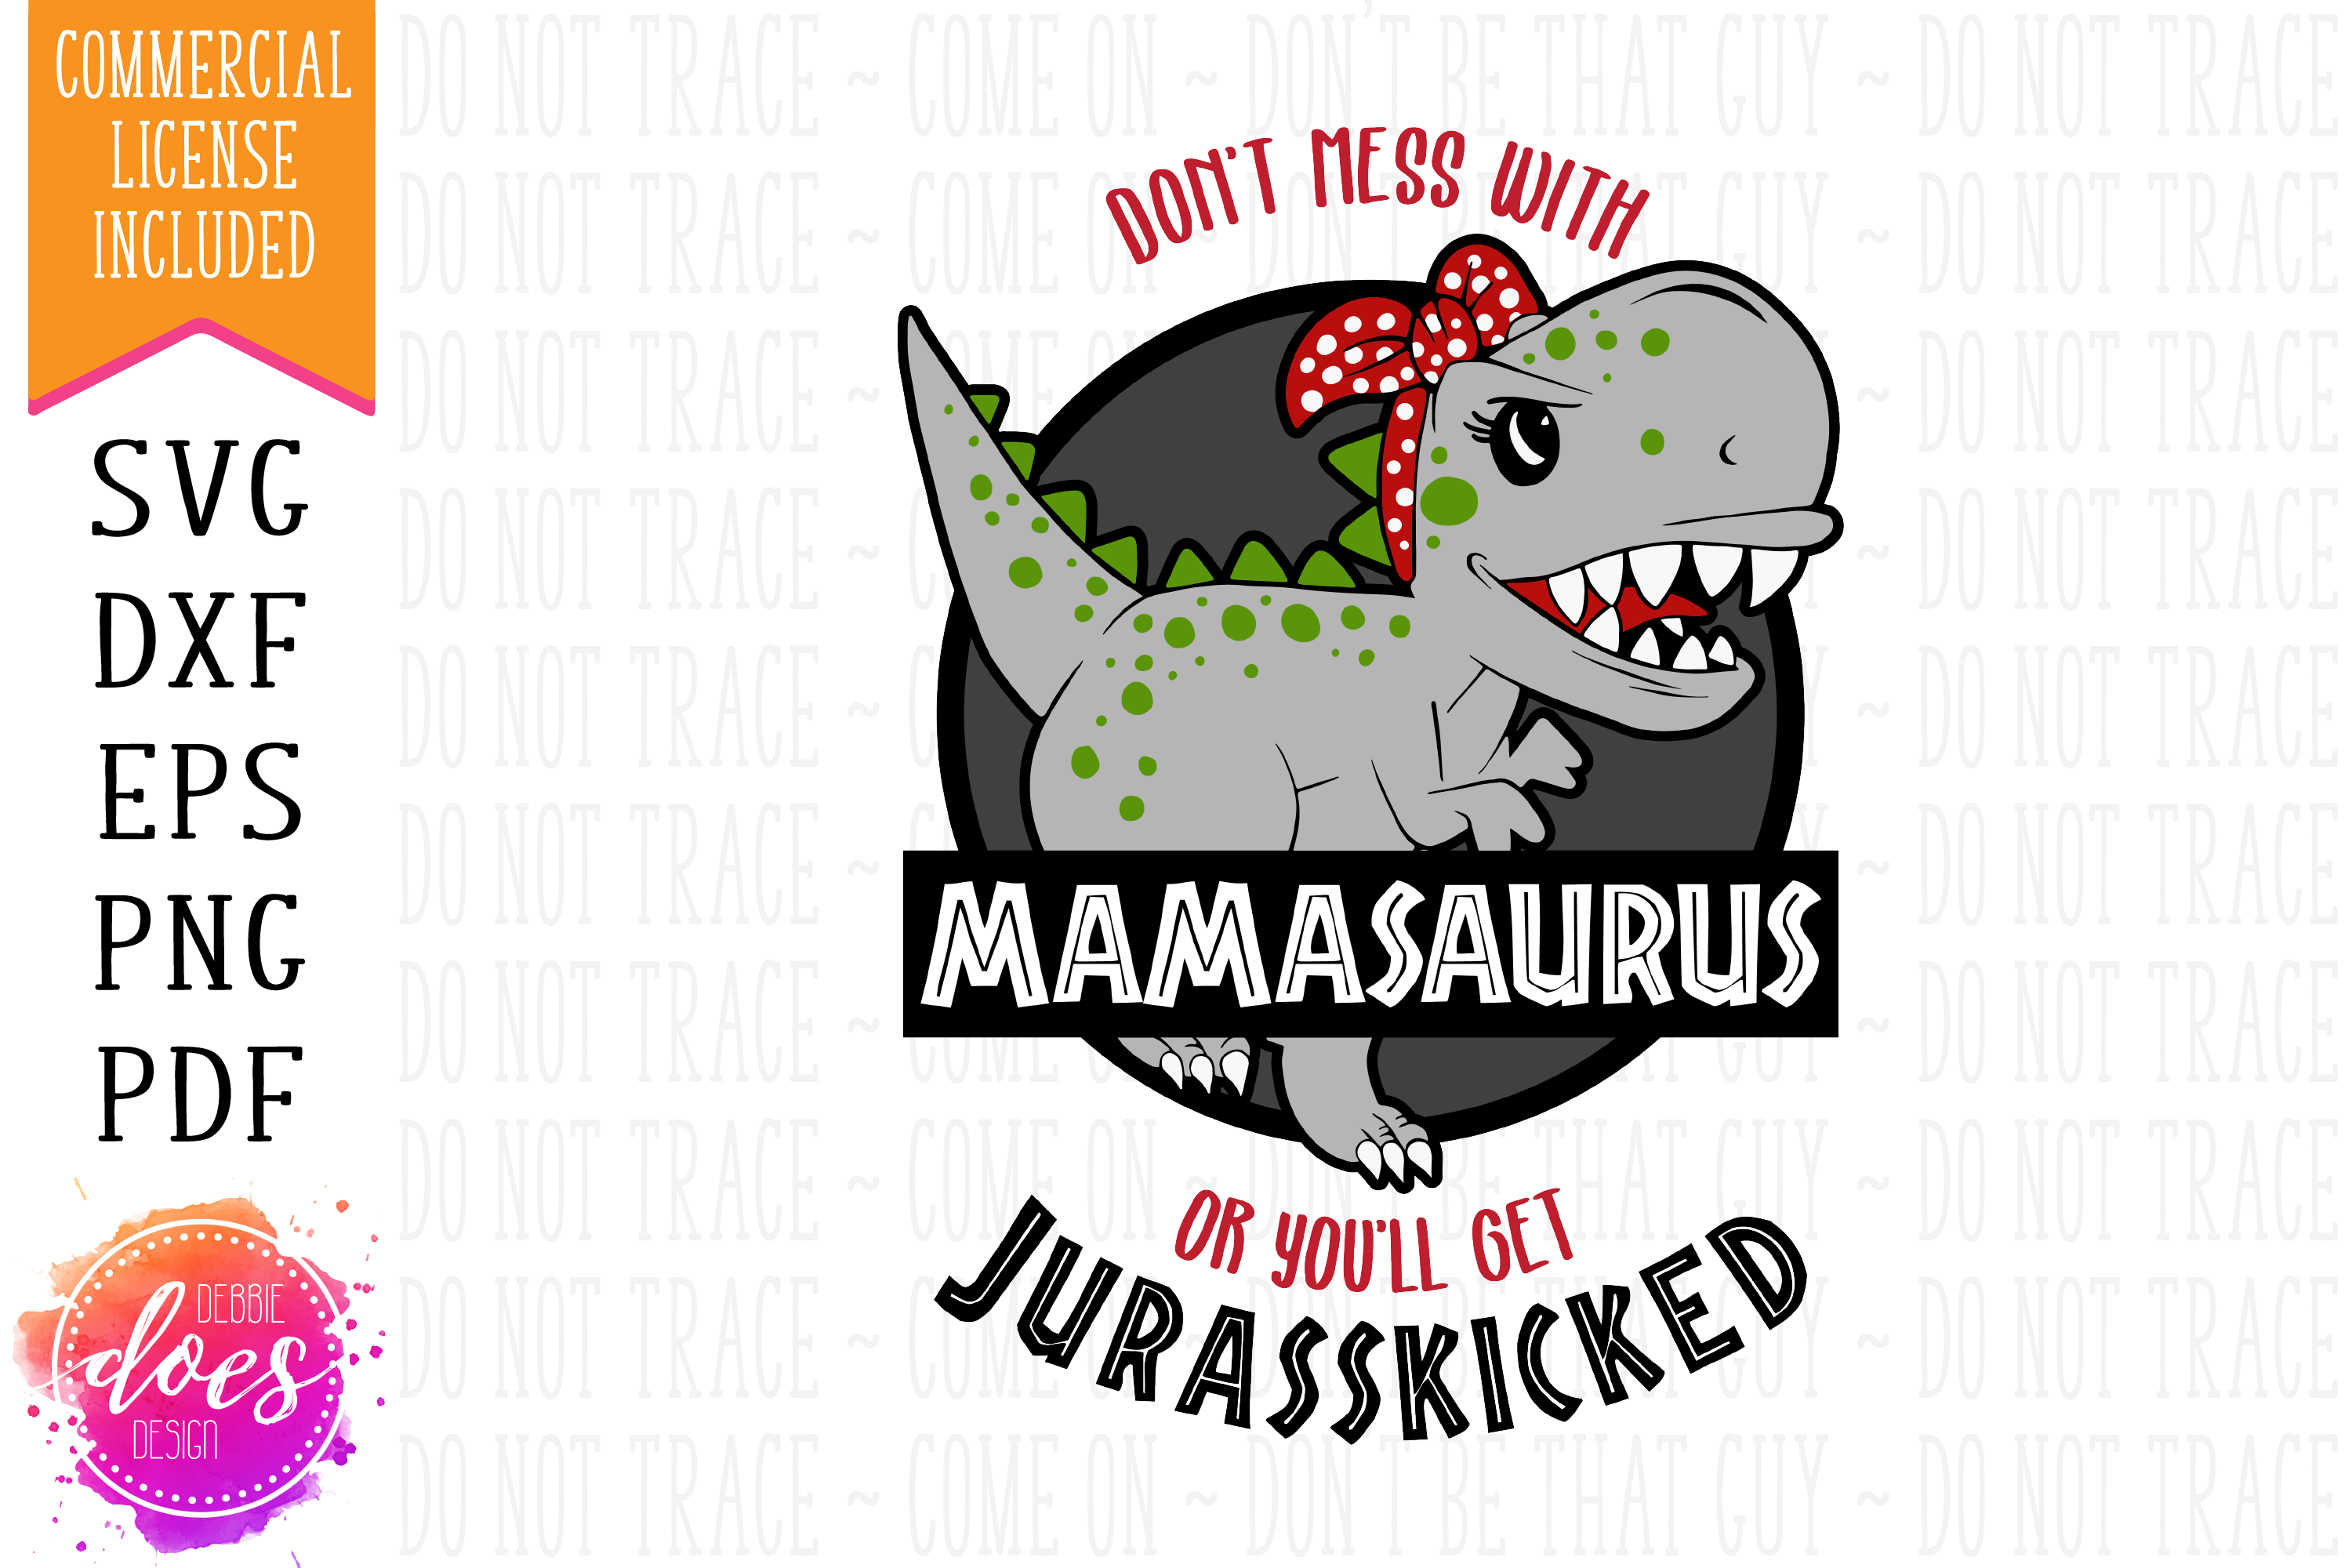 Don't Mess With Mamasaurus or You'll Get Jurasskicked - SVG example image 1